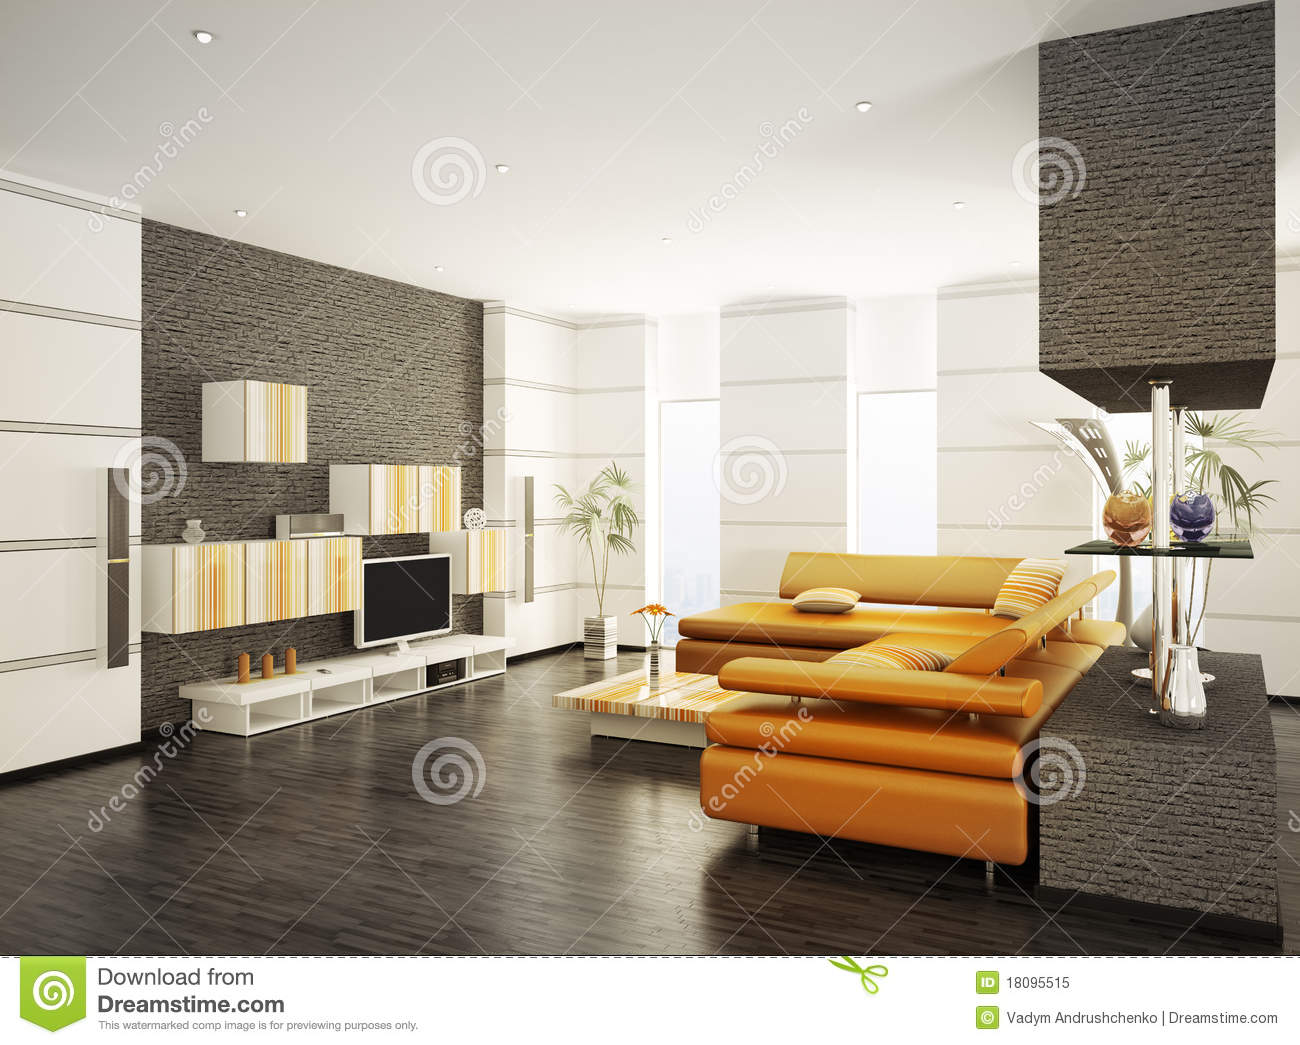 Modern living room interior 3d render royalty free stock for Room interior